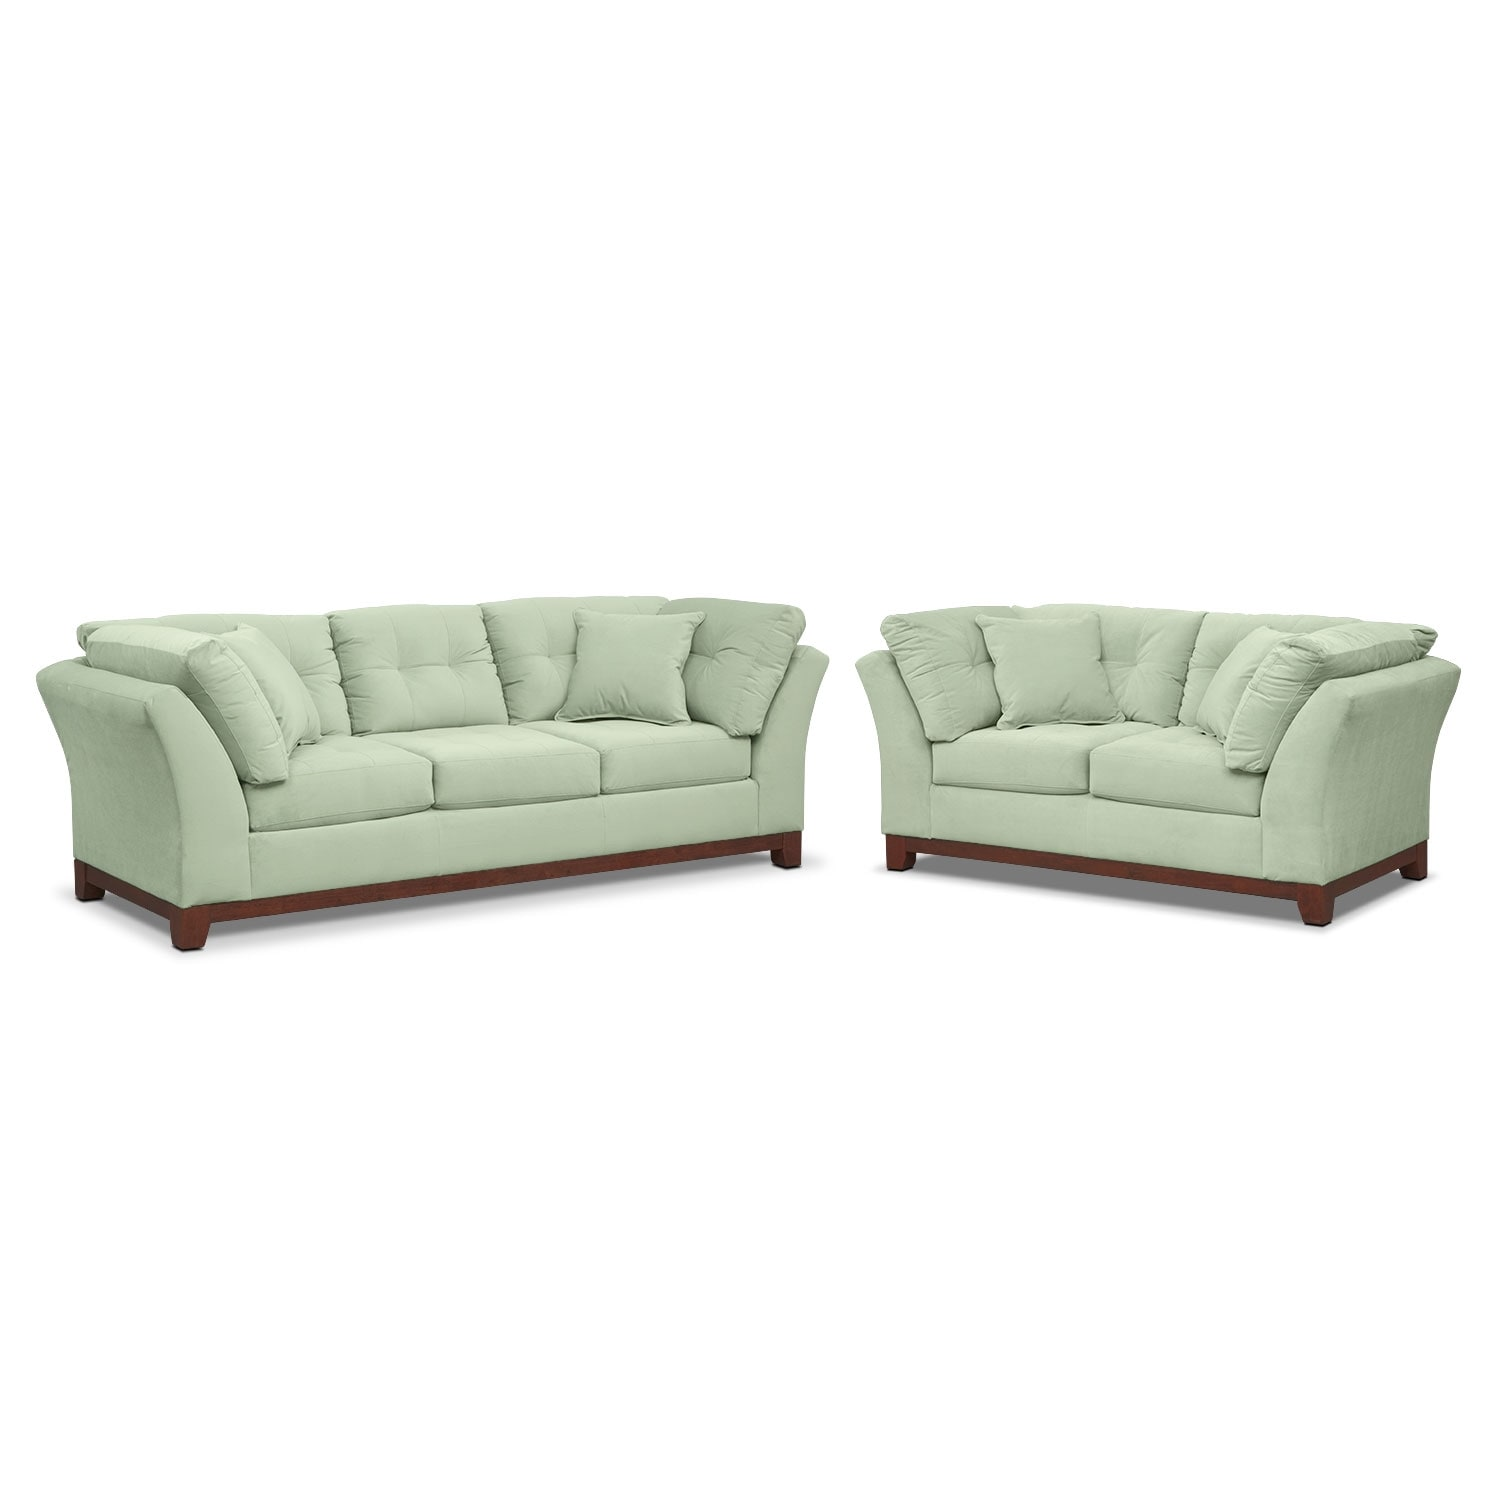 Living Room Furniture - Sebring Sofa and Loveseat Set - Spa